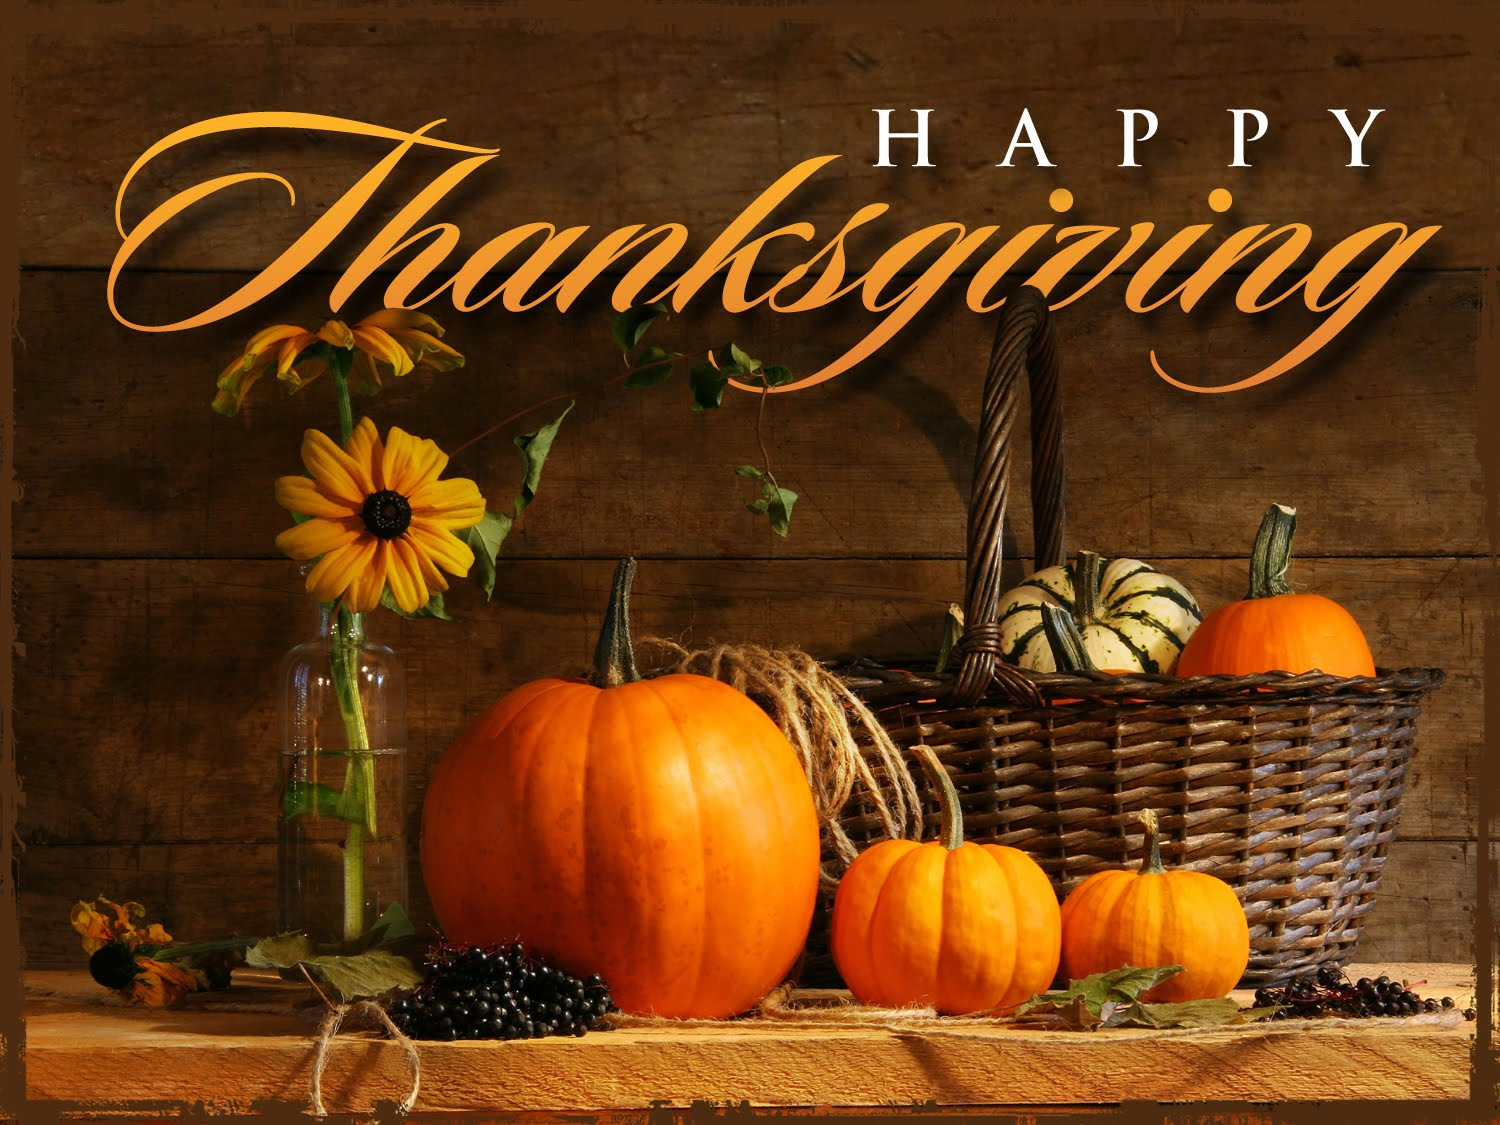 http://www.assaggirestaurant.com/menus/wp-content/uploads/2012/10/happy-thanksgiving.jpg